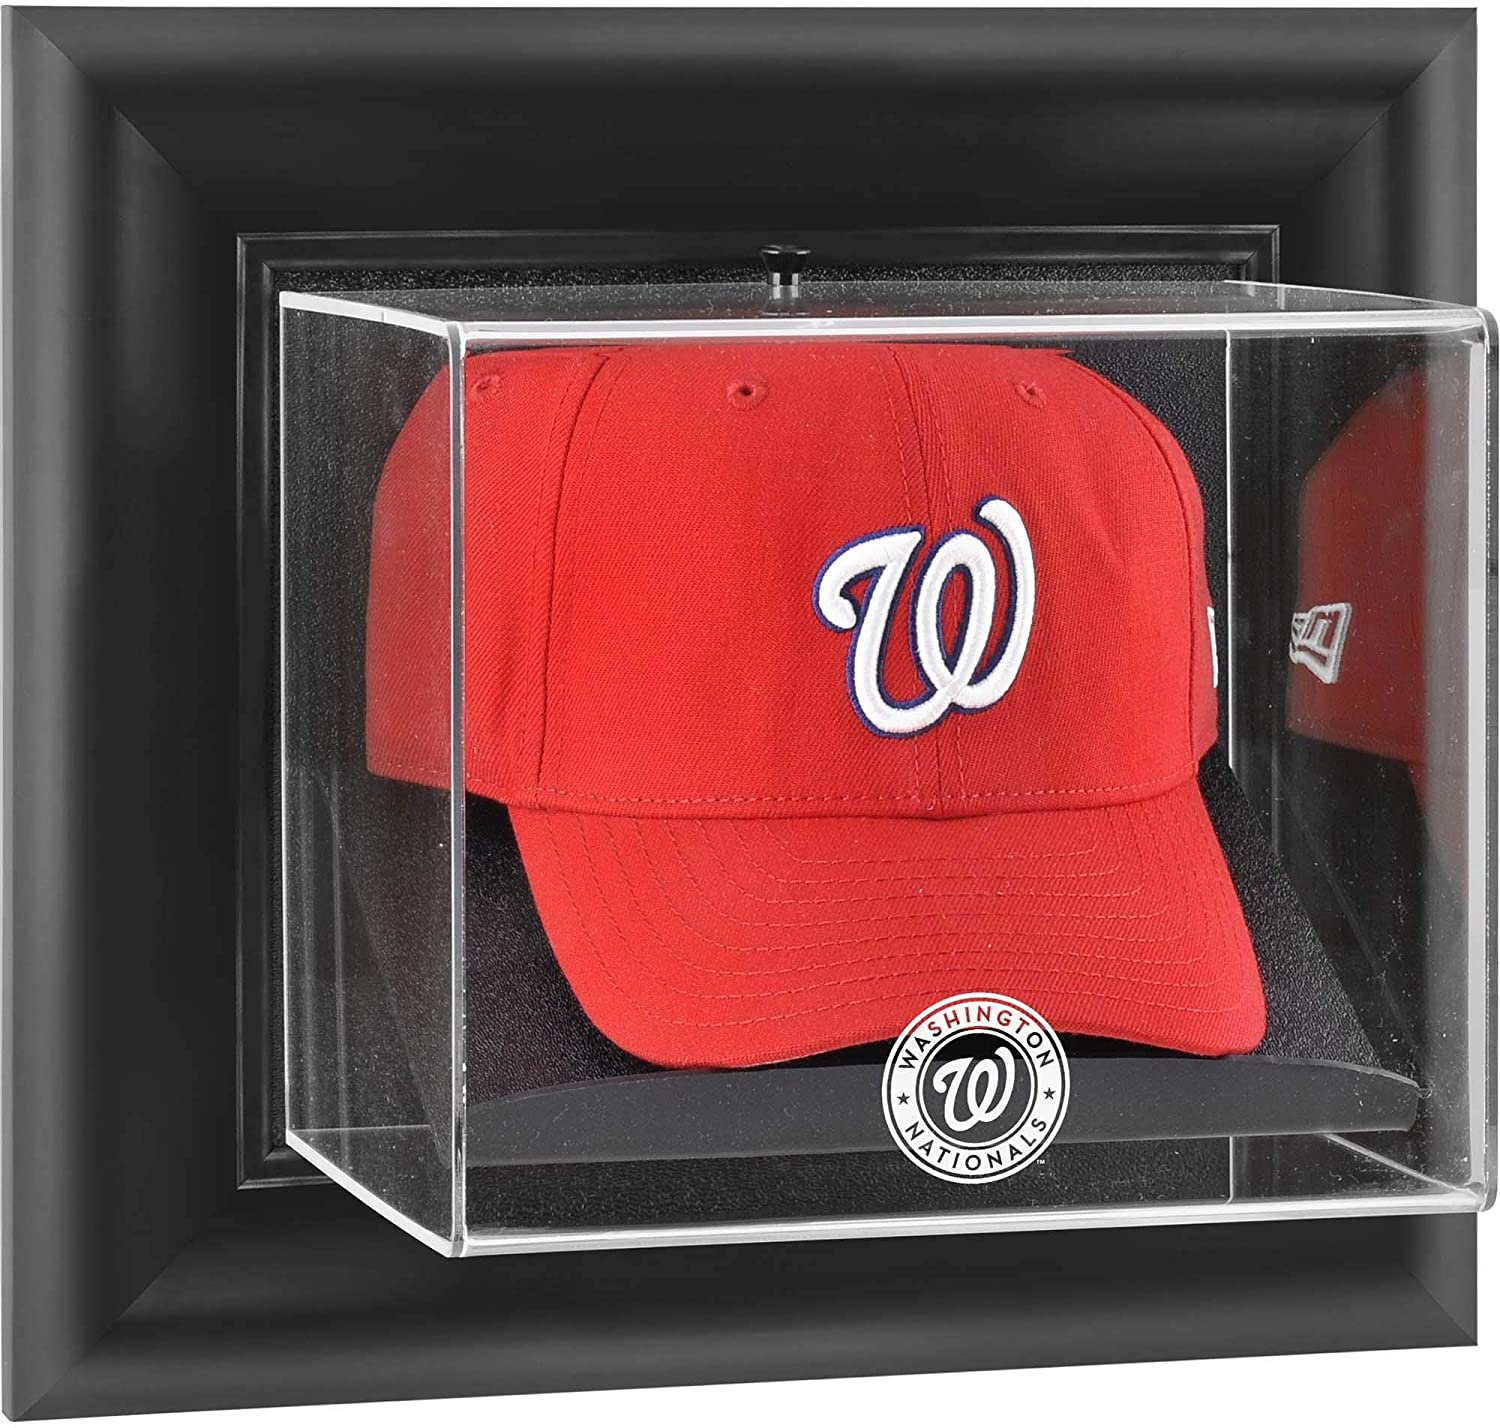 Washington Nationals Framed壁マウントロゴキャップDisplayケース  クリア B001MVXDZU